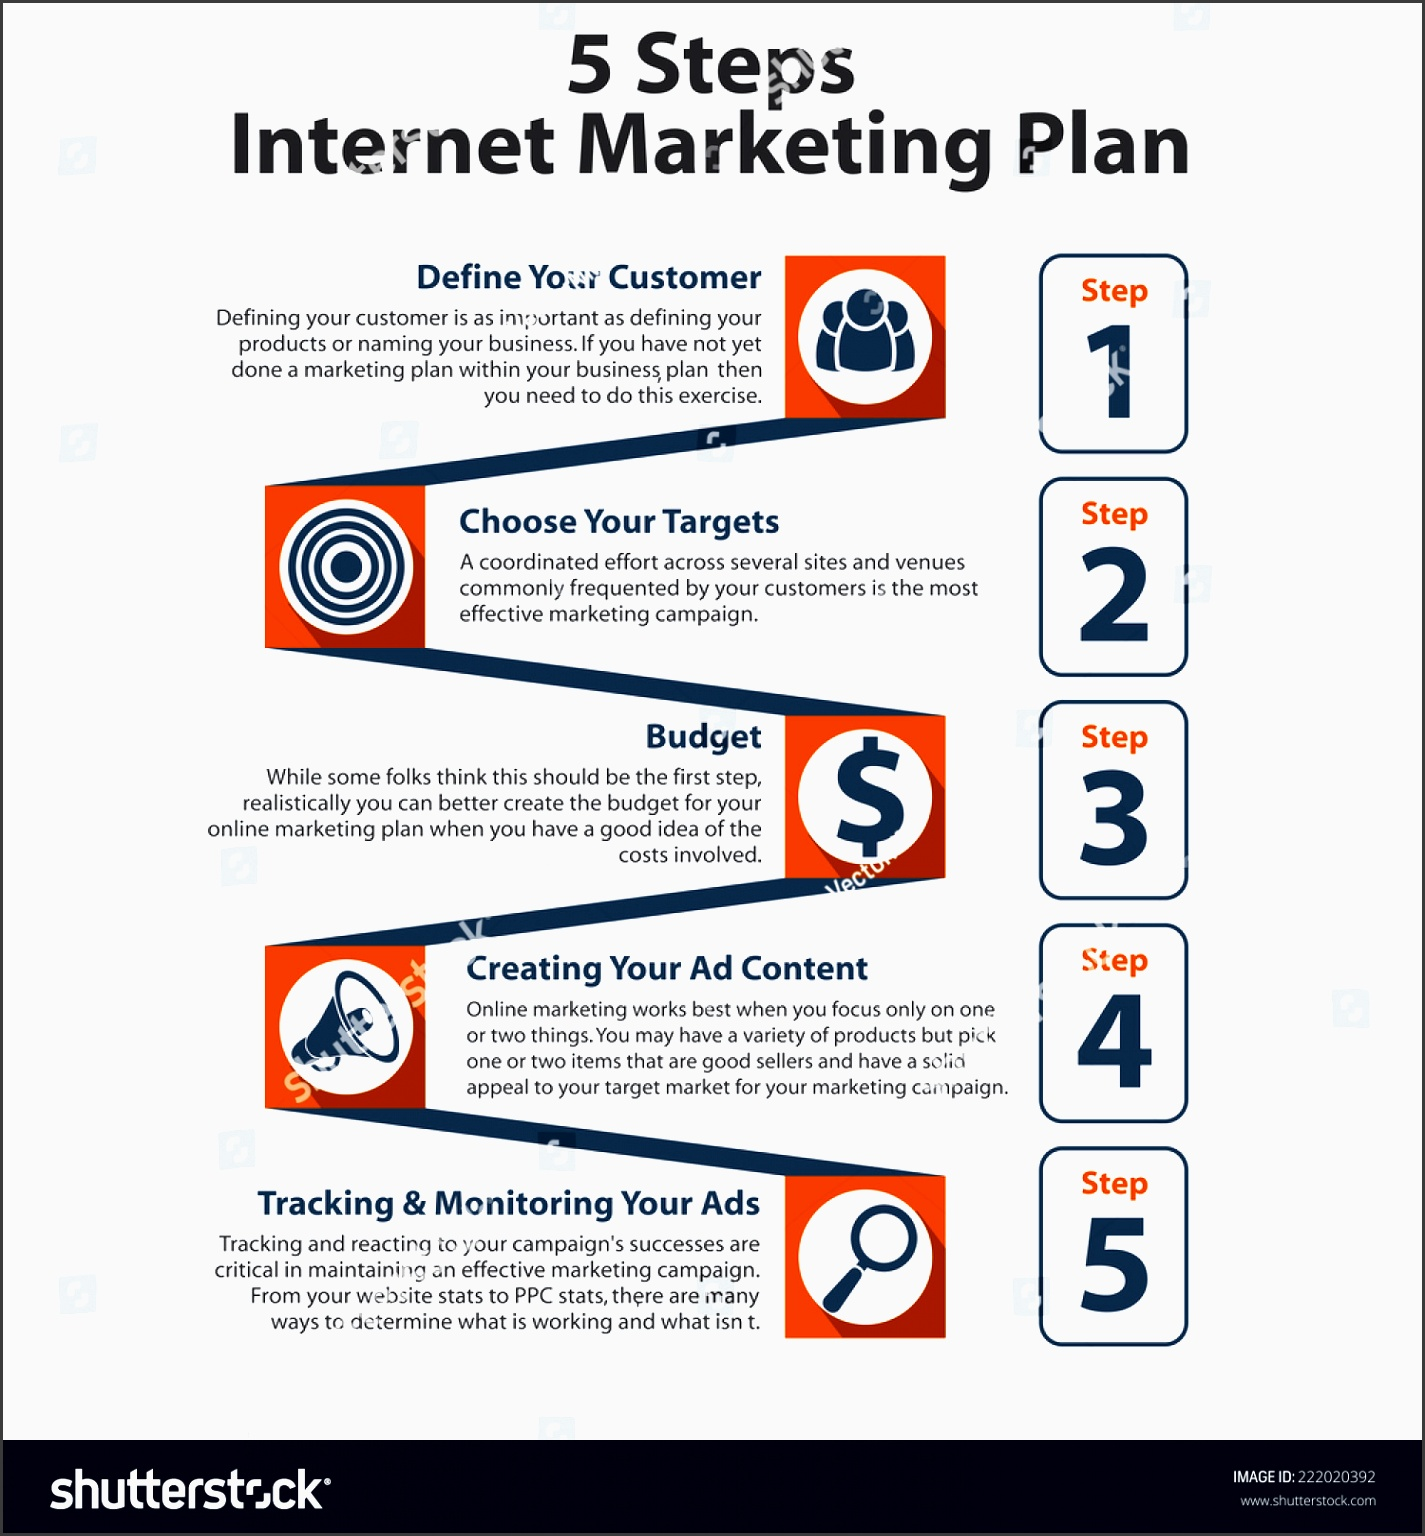 terraces style for the 5 steps internet marketing plan flat graphic design for internet marketing